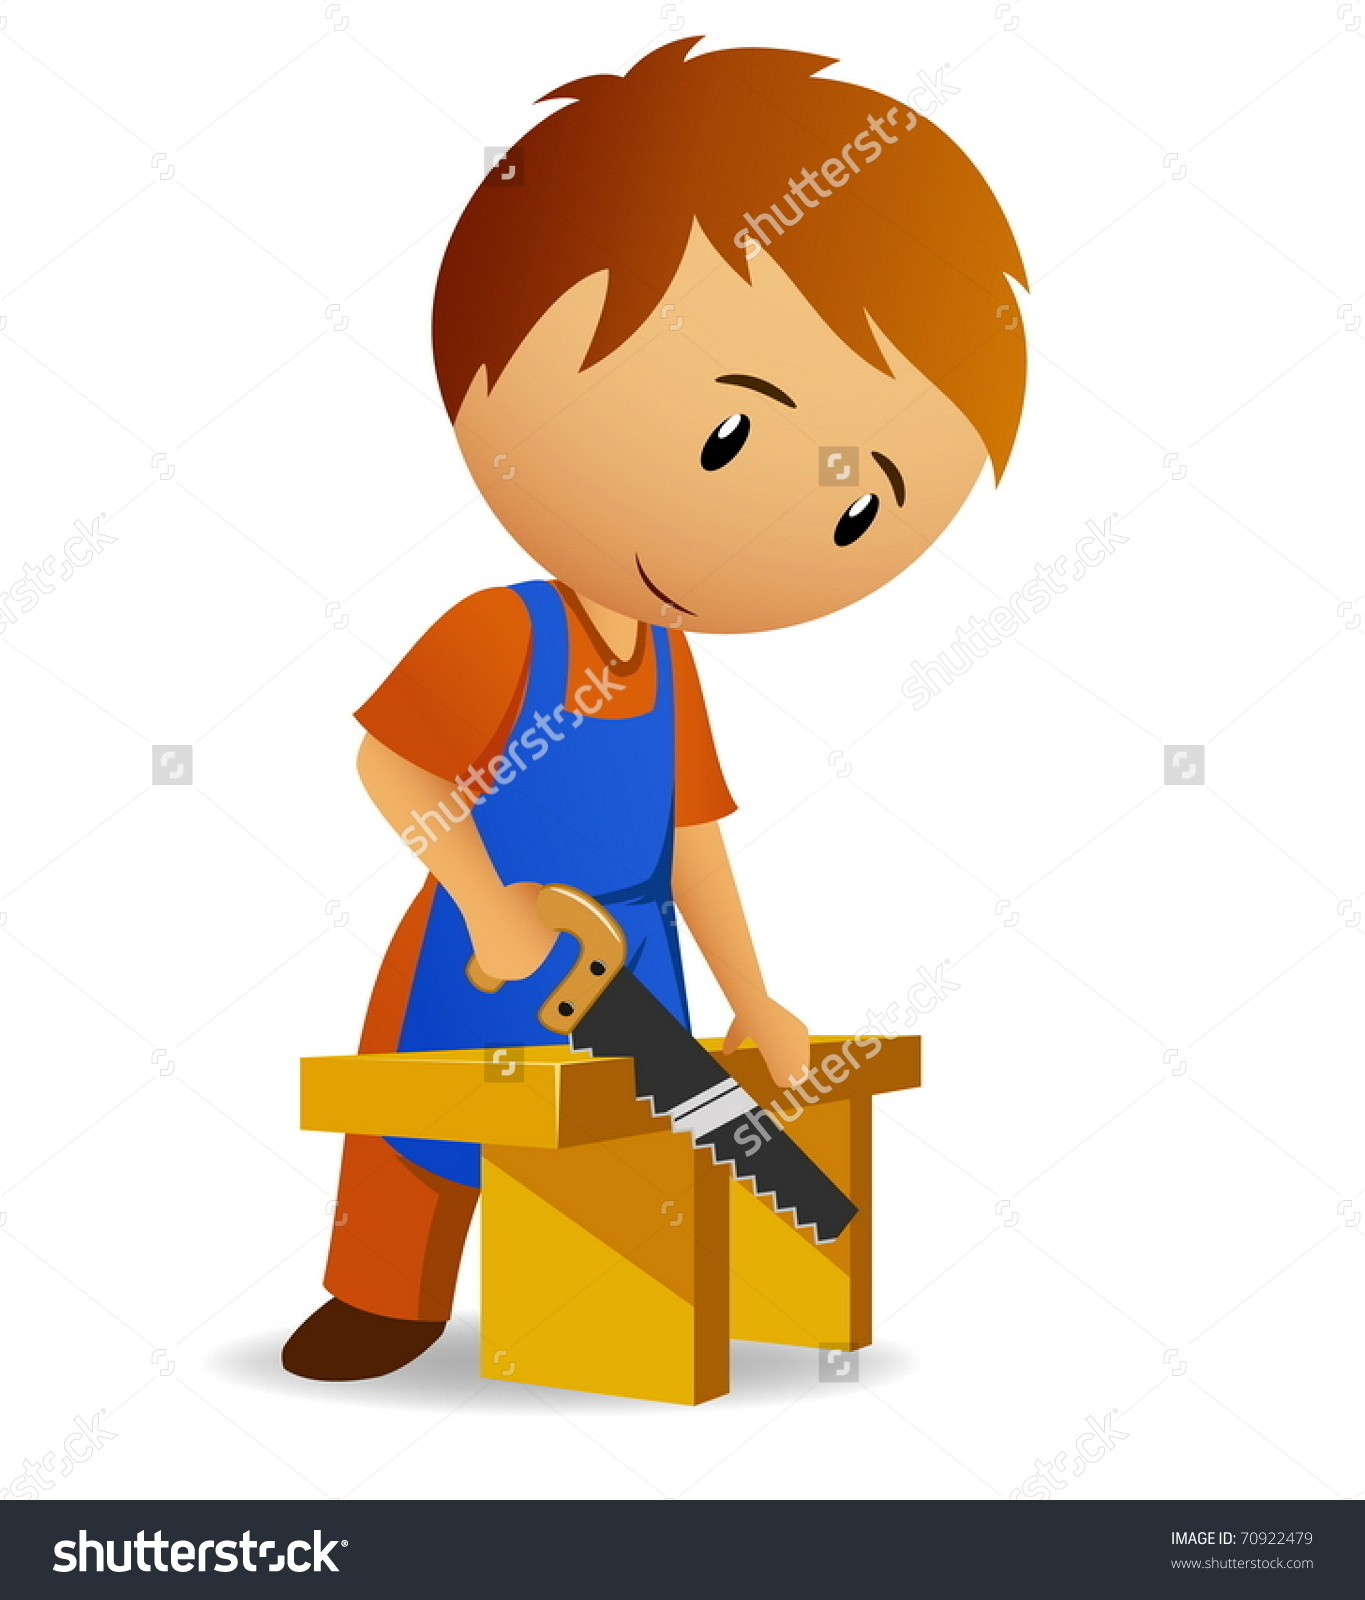 Vector Illustration Cartoon Carpenter Cutting Wooden Stock Vector.